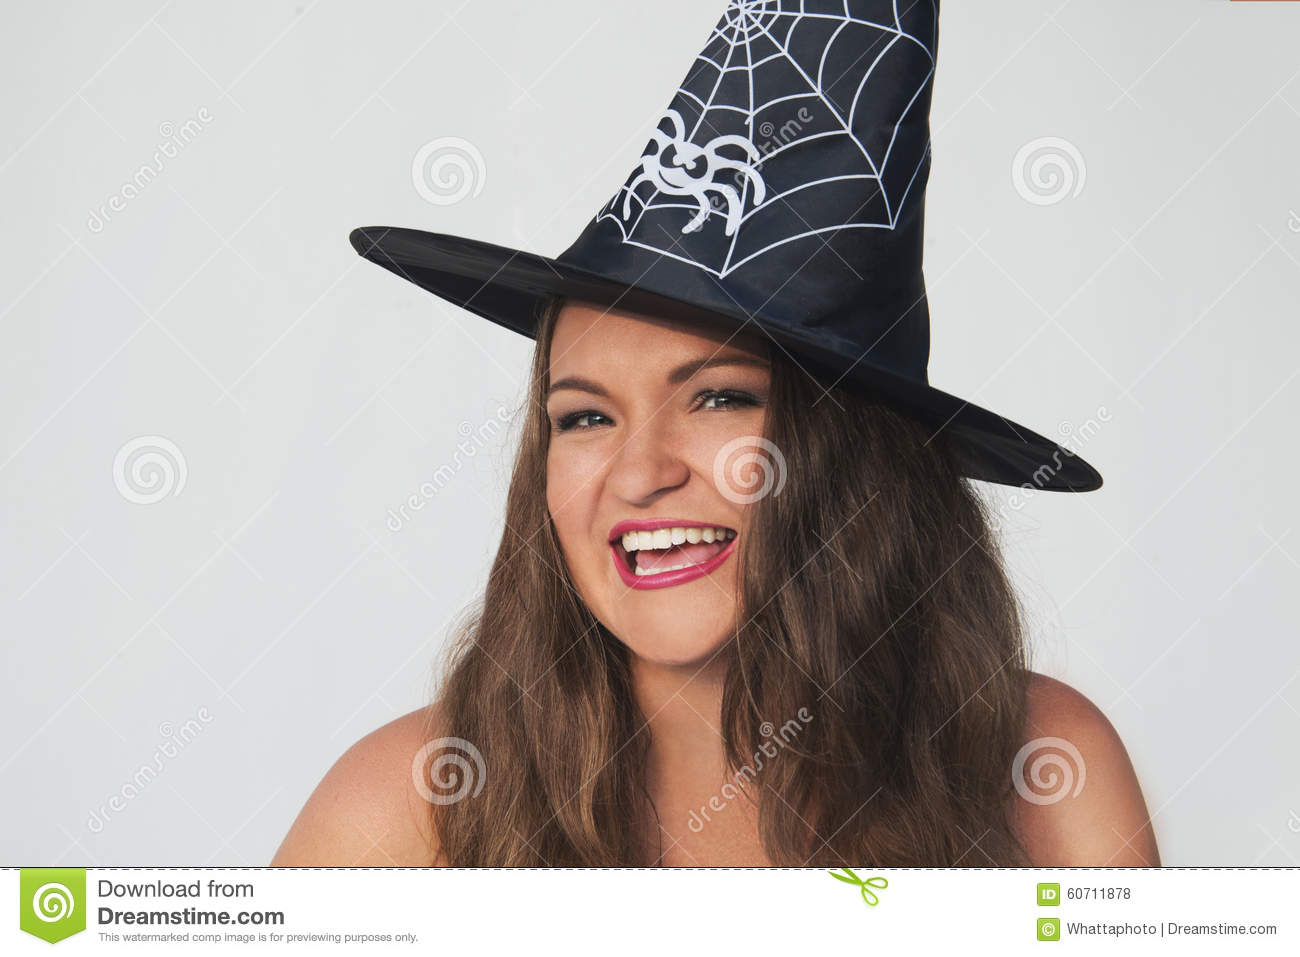 Funny Young Woman In Halloween Witch Hat Stock Photo - Image: 60711878